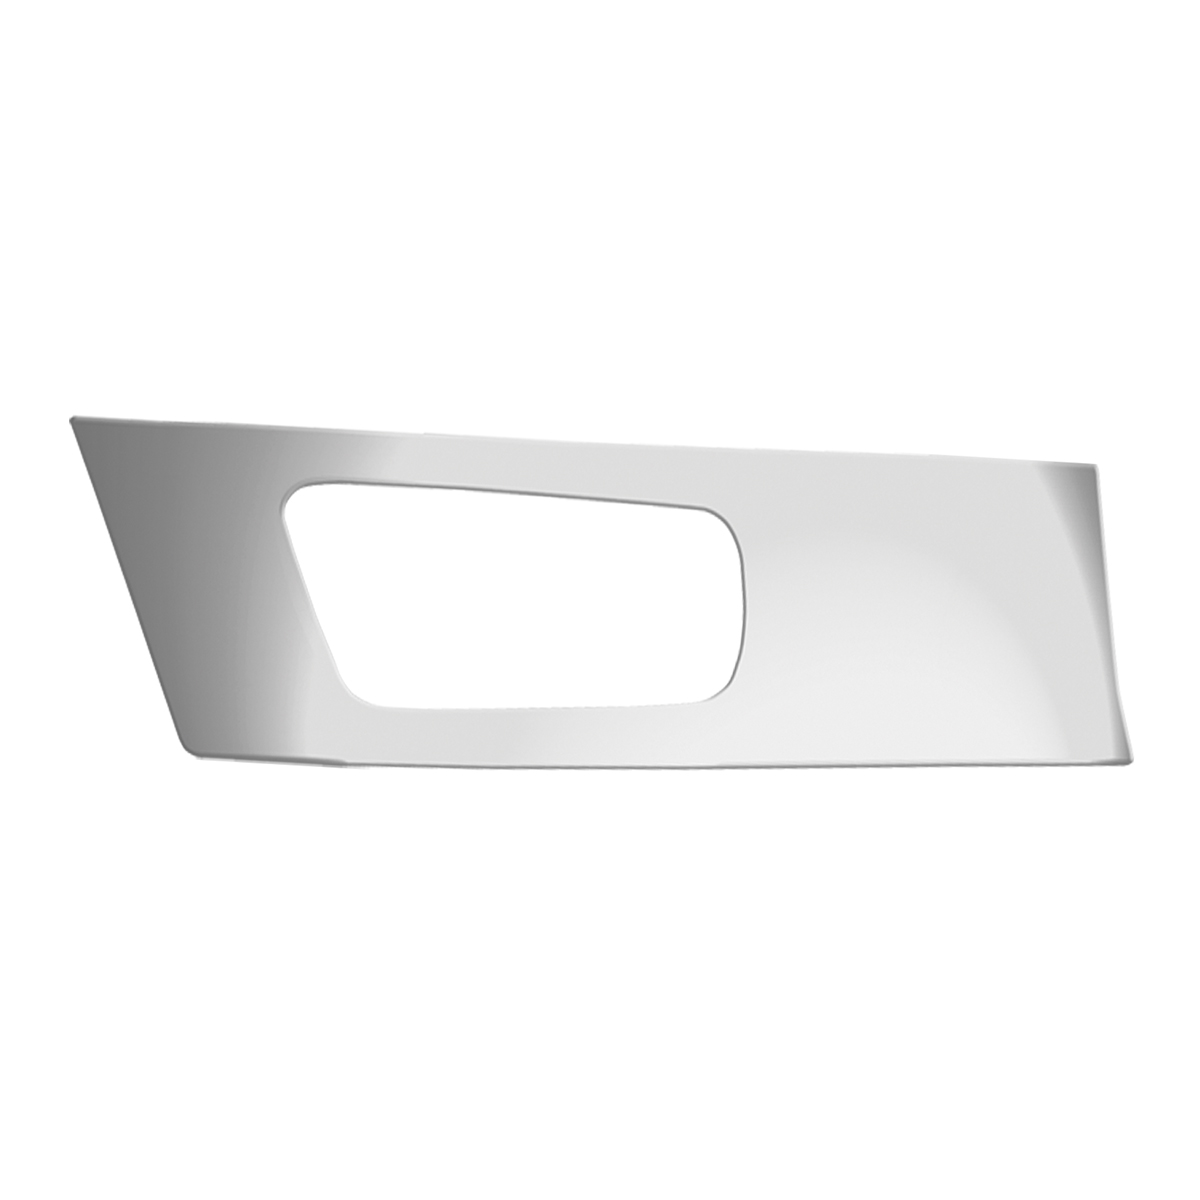 68927 KW Chrome Soft Plastic Driver Side Door Panel